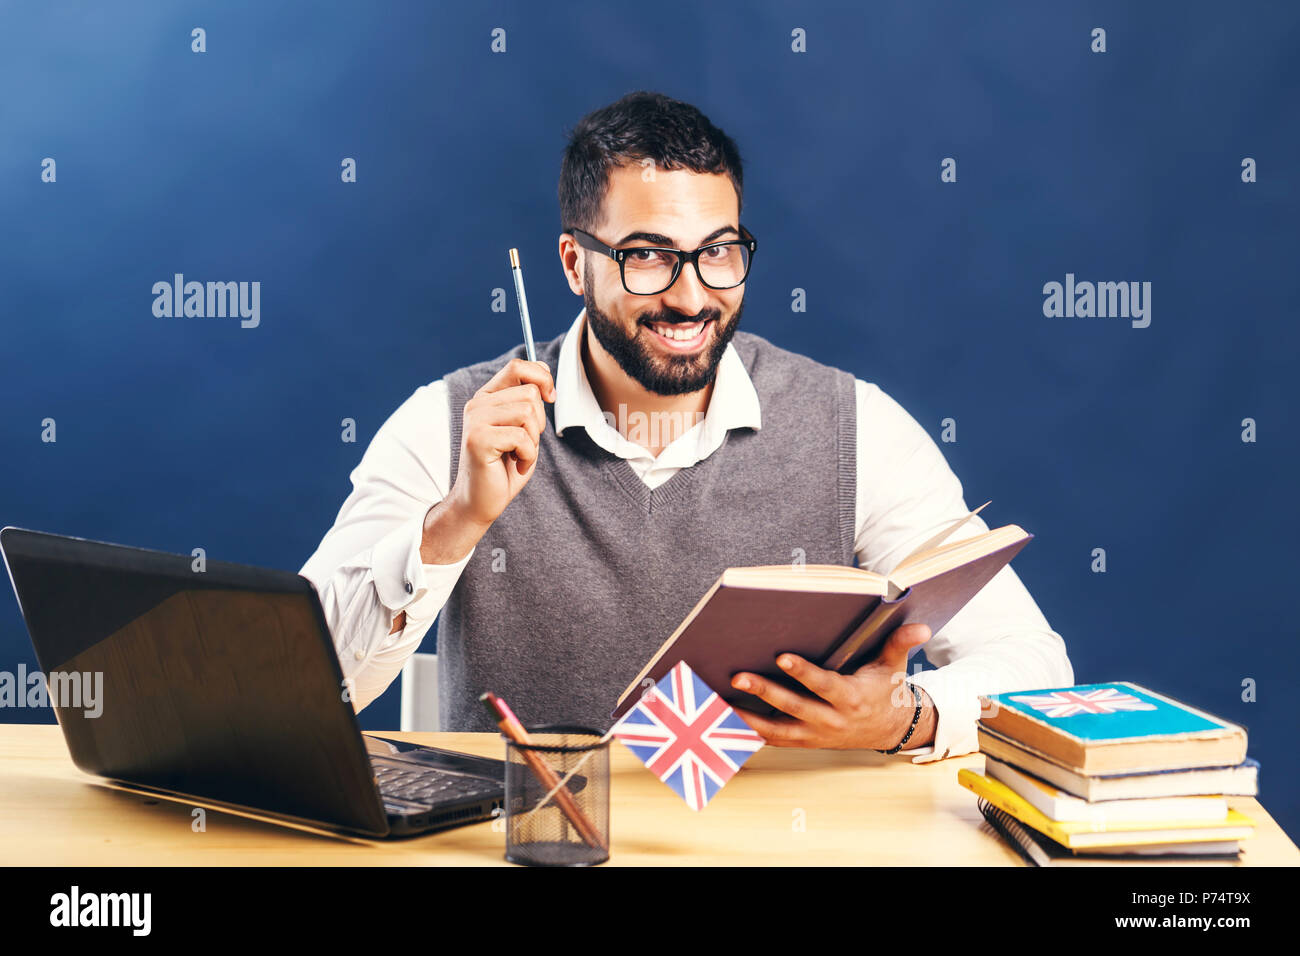 Black-haired man learning english, wearing gray sweater vest and pristine white shirt, smiling at the office desk with laptop before black wall - Stock Image